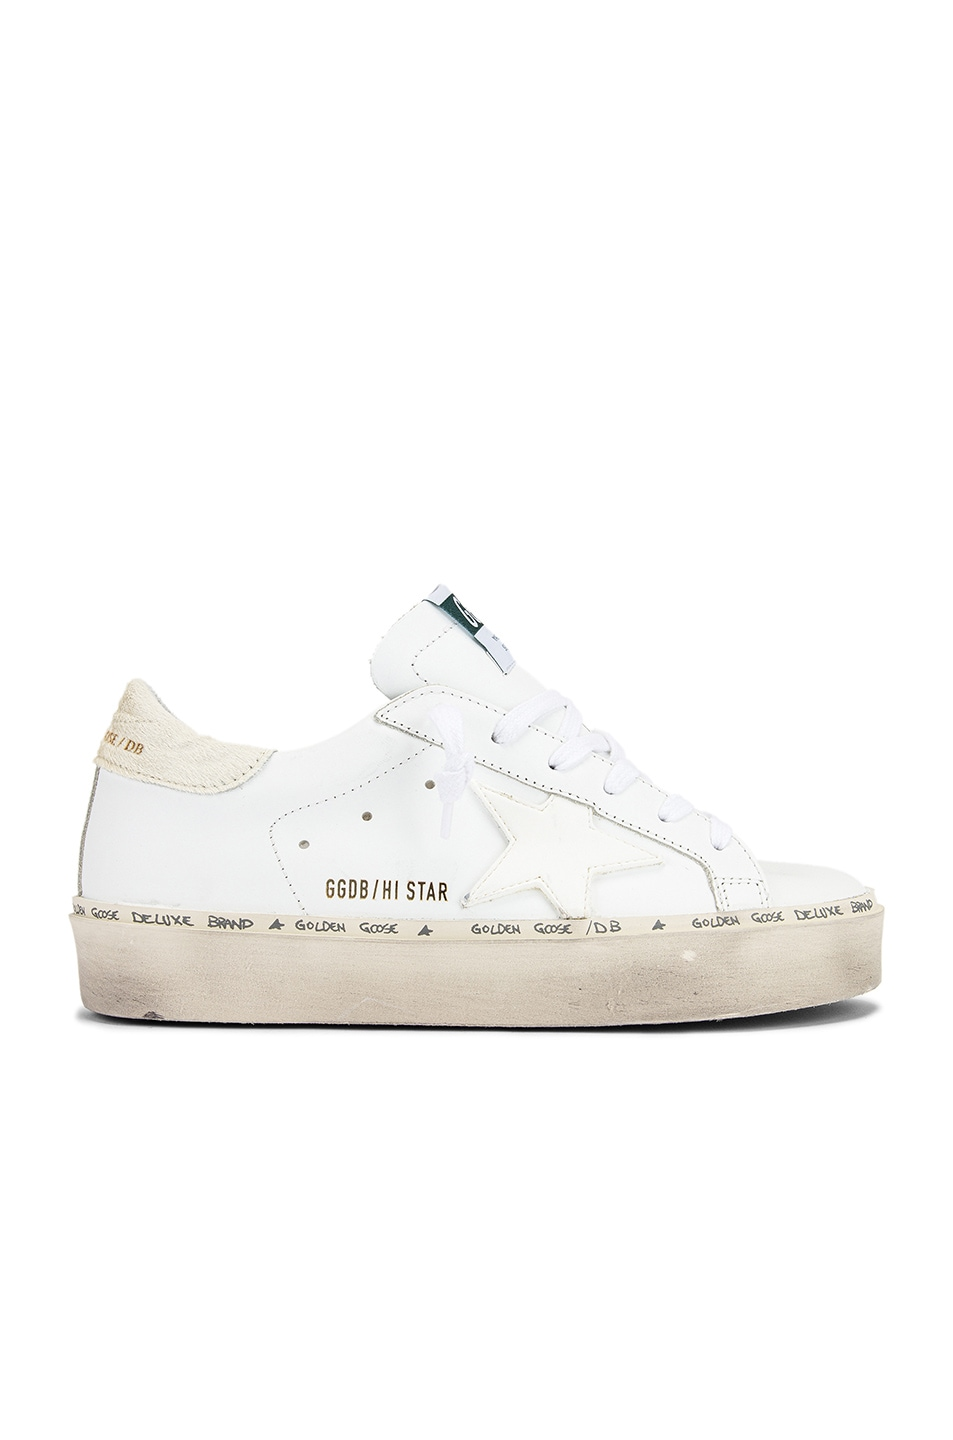 Image 1 of Golden Goose Hi Star Sneaker in White Leather & Carved